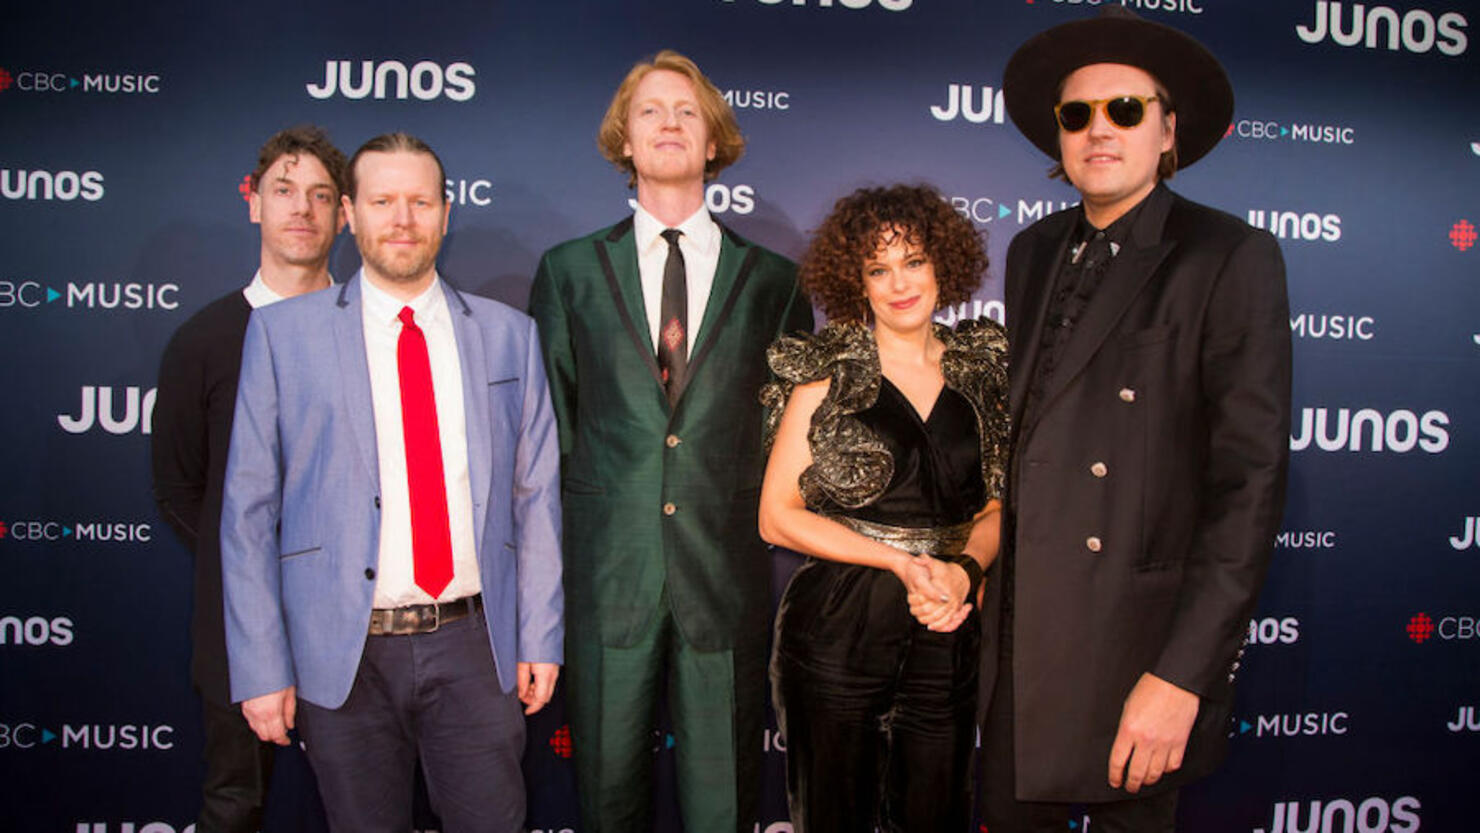 The 2018 JUNO Awards - Arrivals